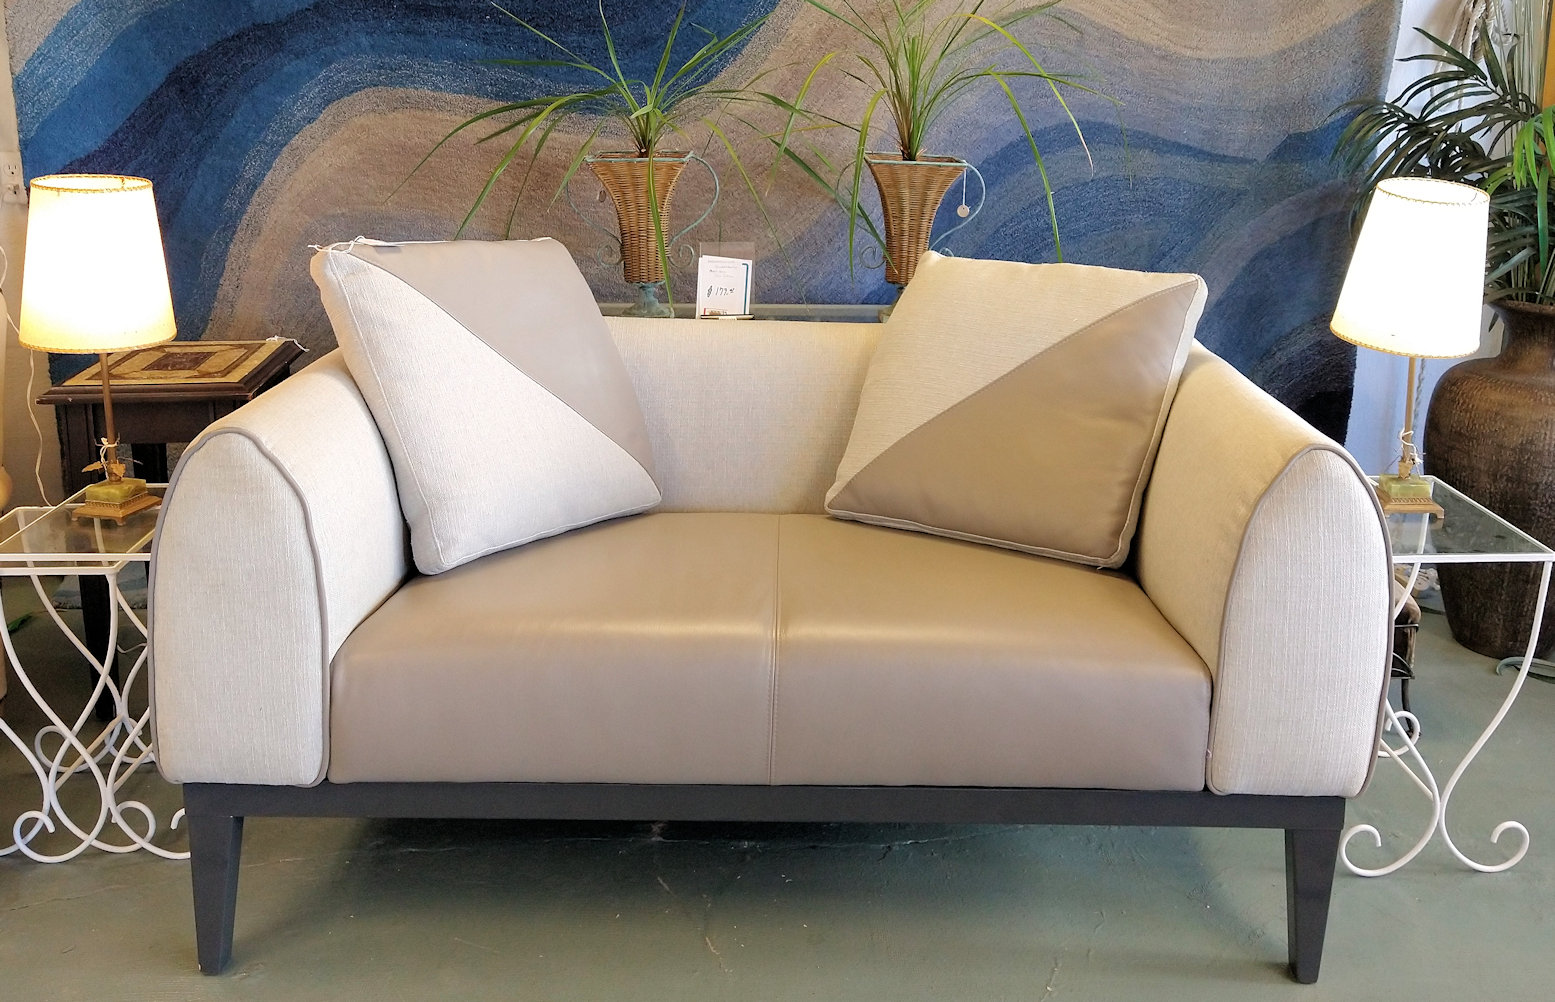 LR0357-Leather-and-material-loveseat